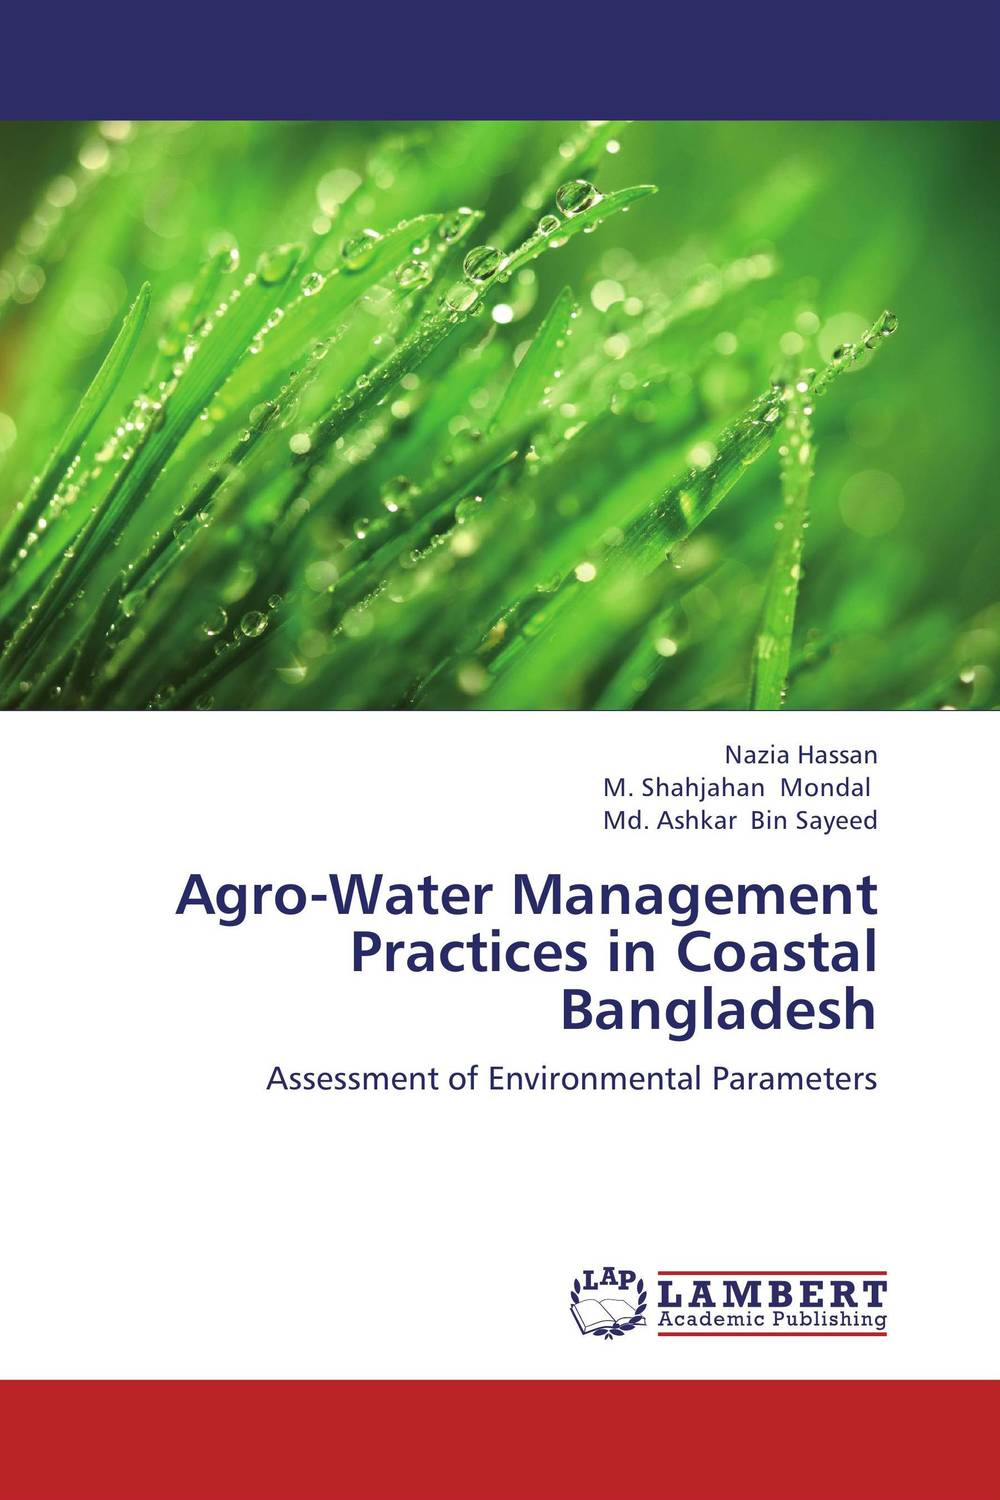 Agro-Water Management Practices in Coastal Bangladesh bride of the water god v 3